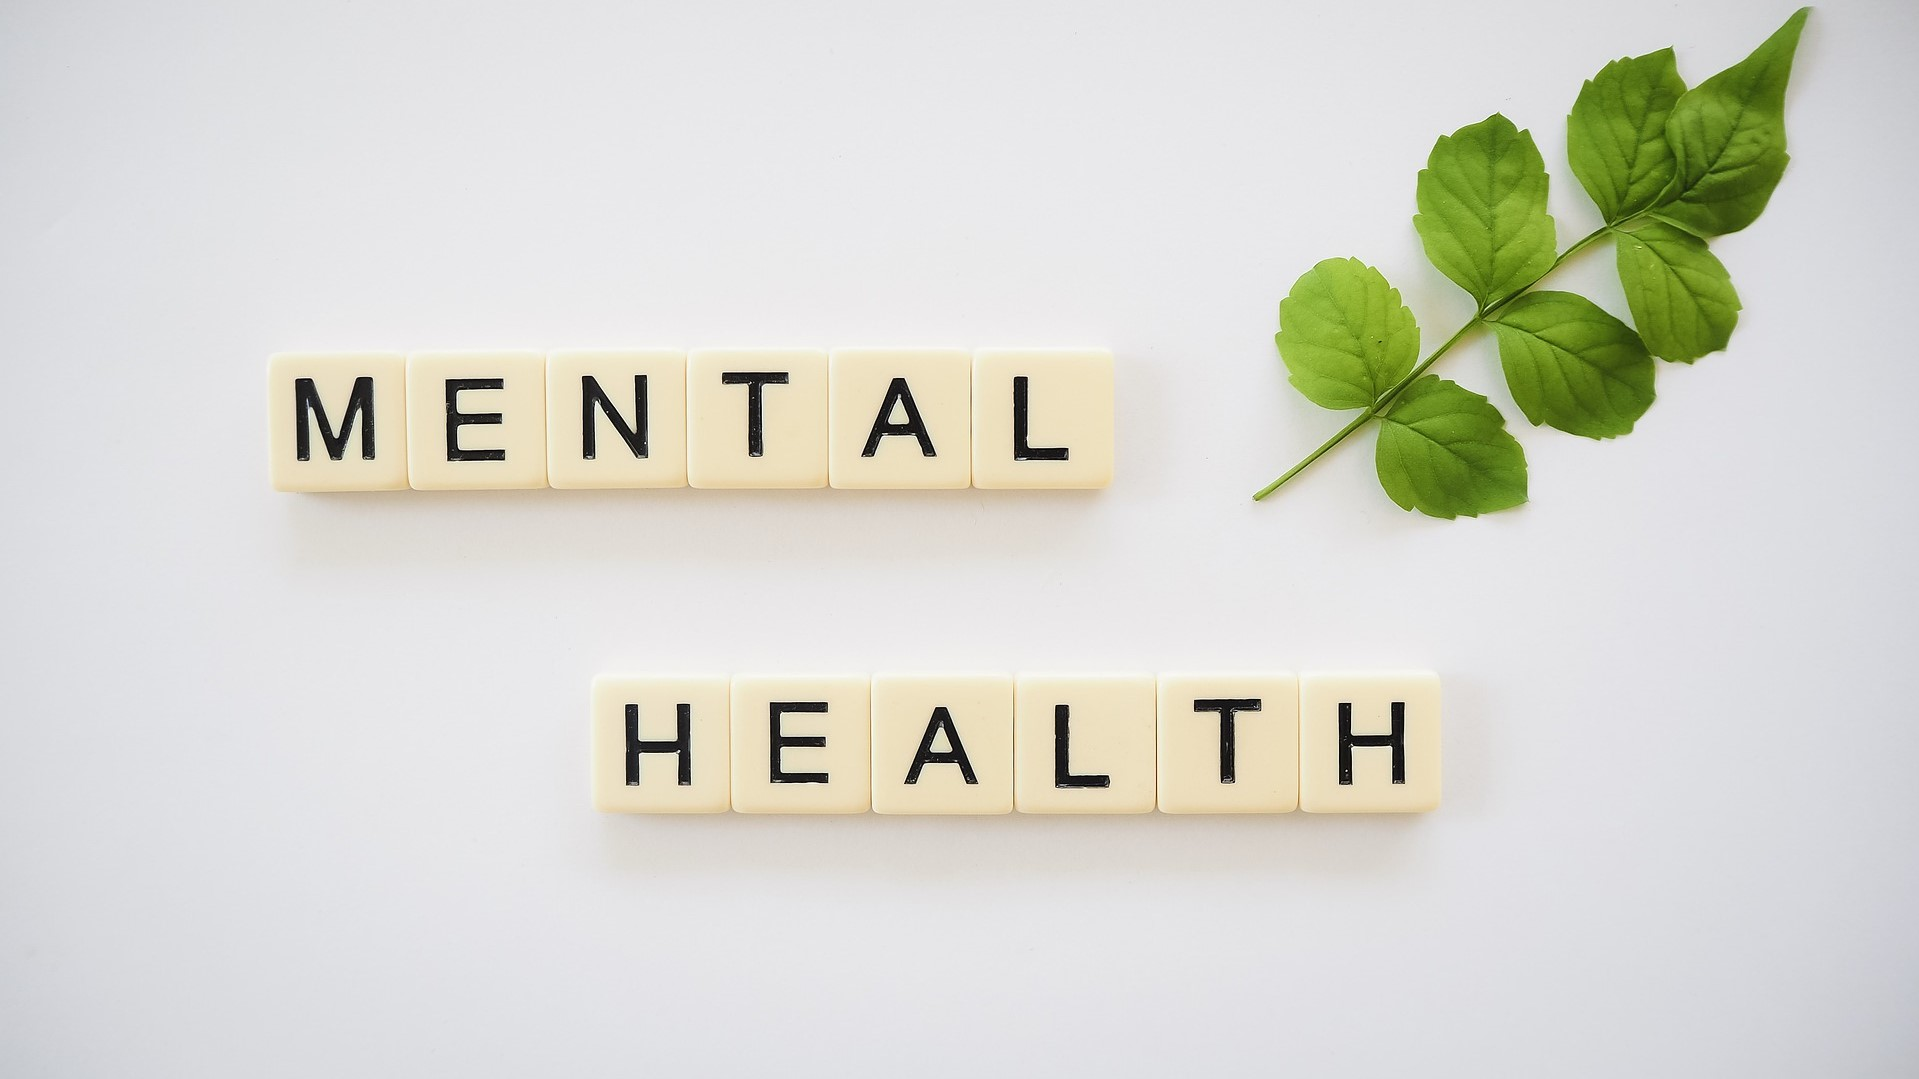 letter tiles spelling out Mental Health on a white background with a small decorative branch off to the top right